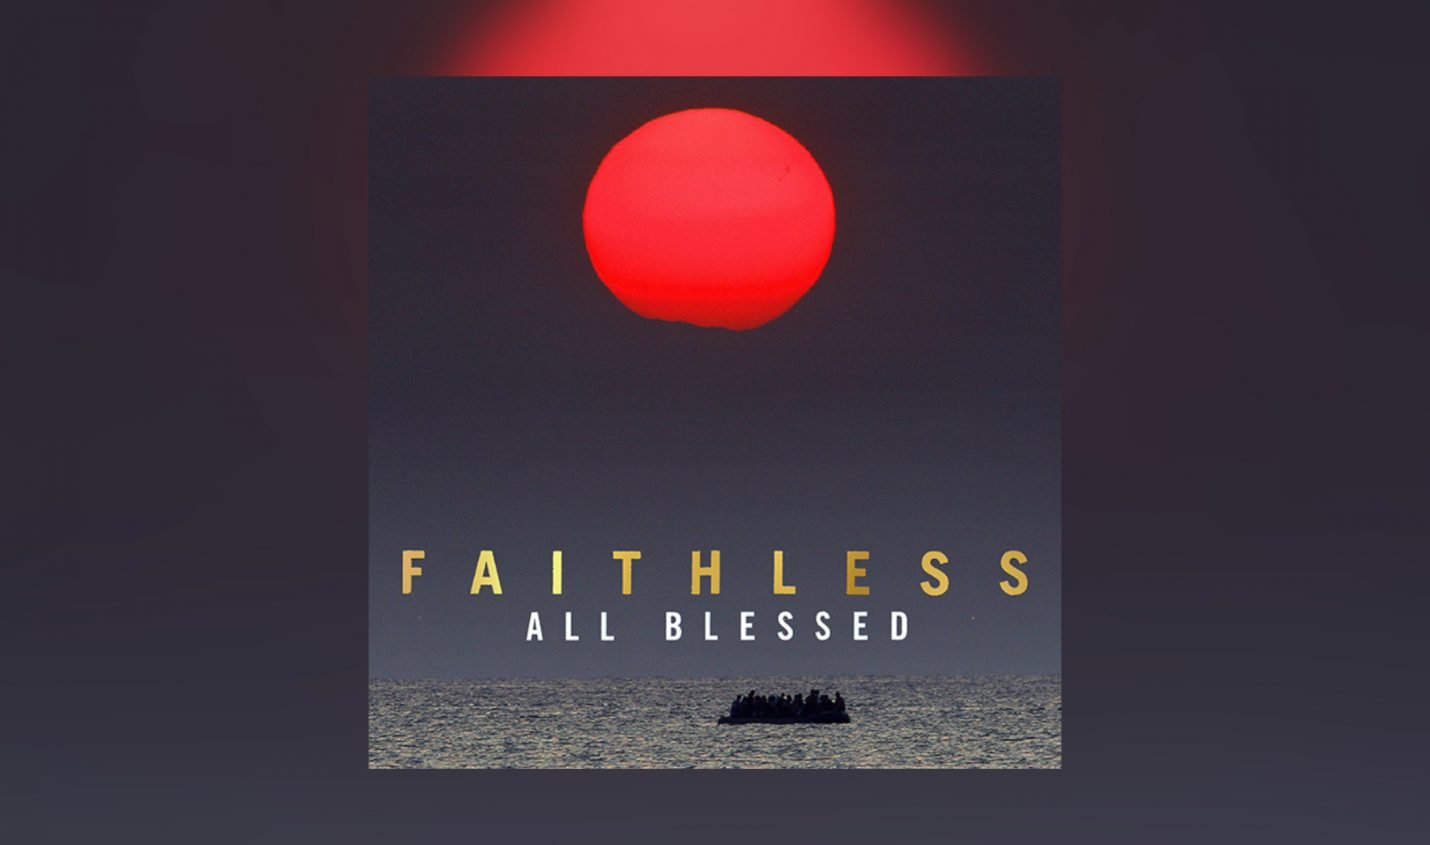 Faithless: Neues Album 'All Blessed' nach 10 Jahren angekündigt